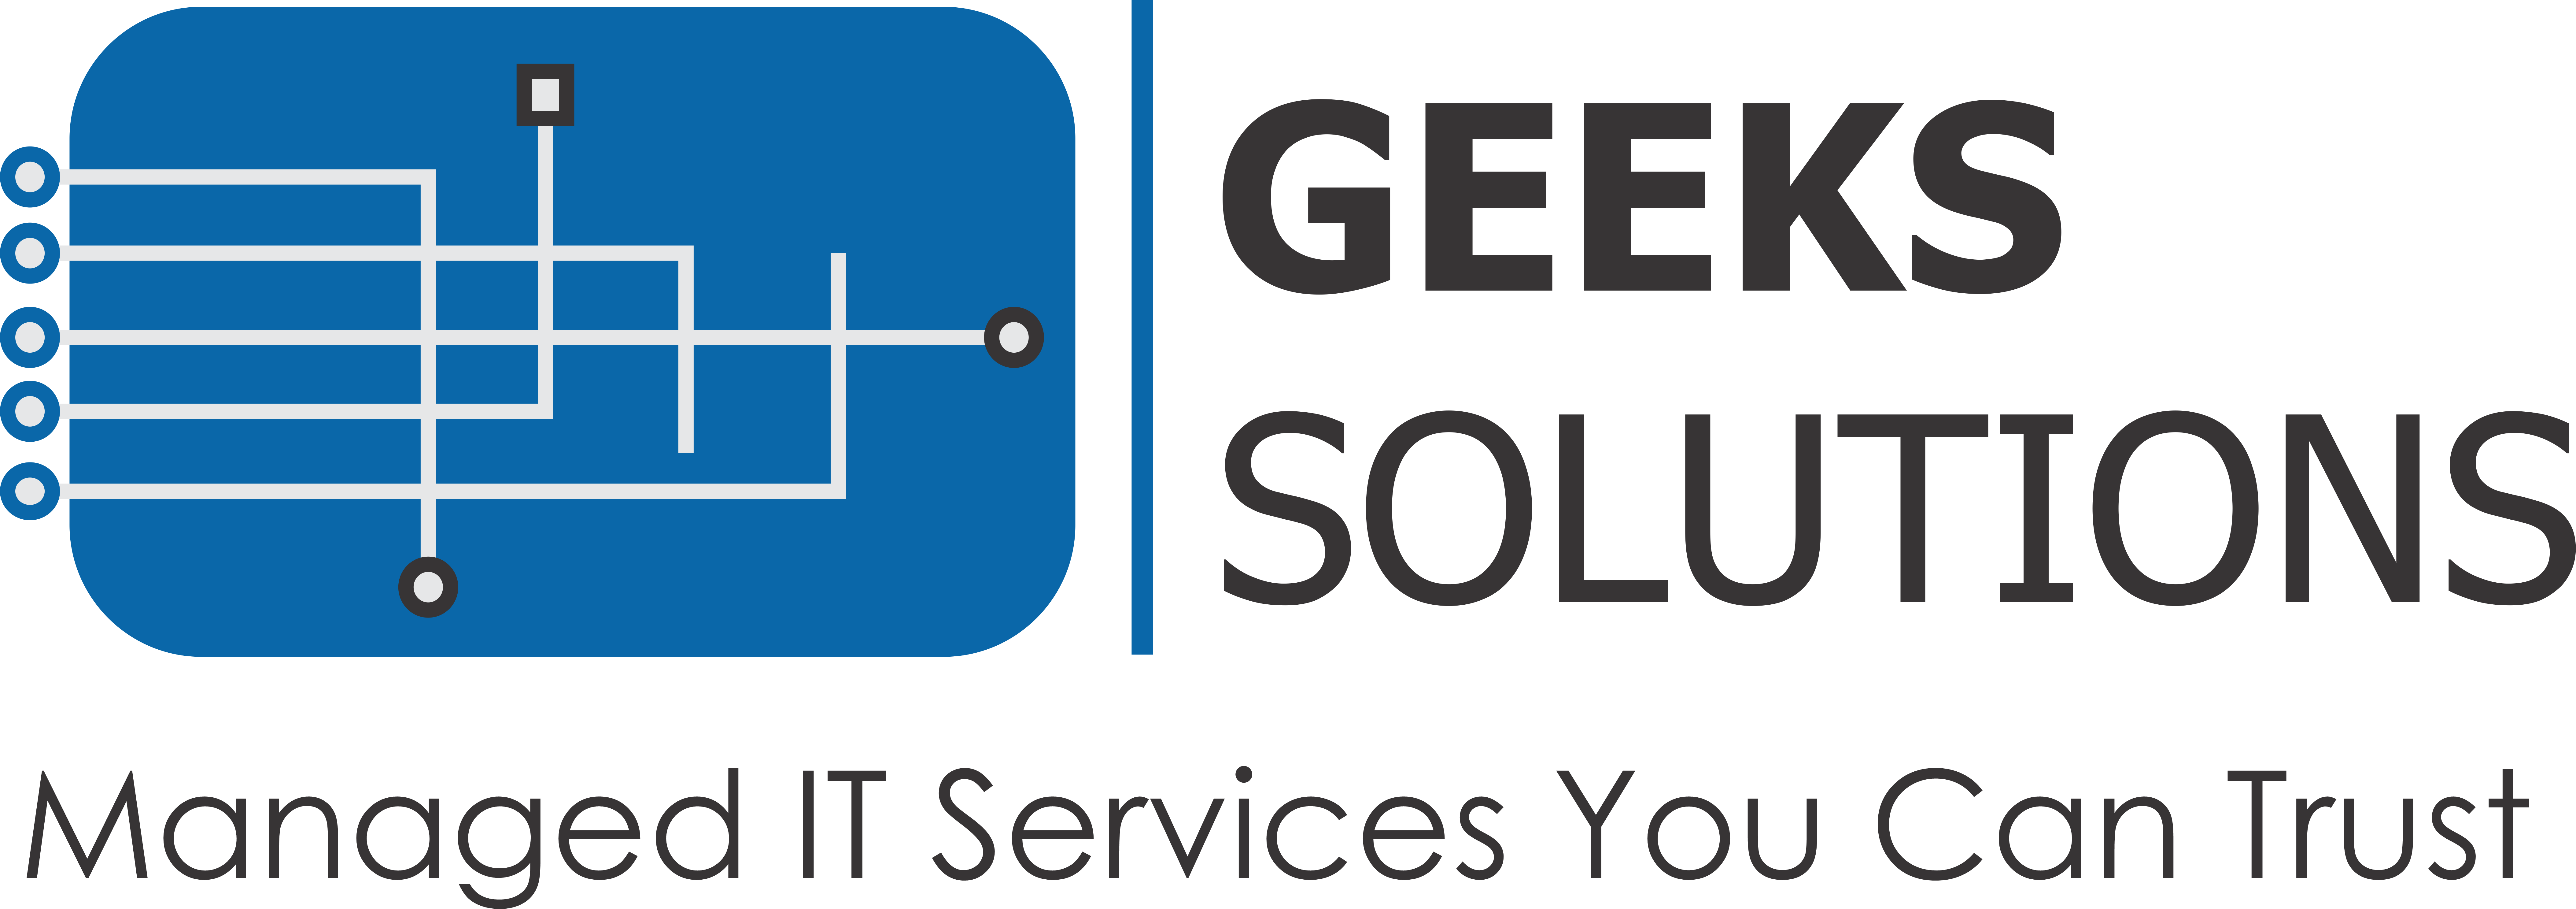 Geeks Solutions | Blog